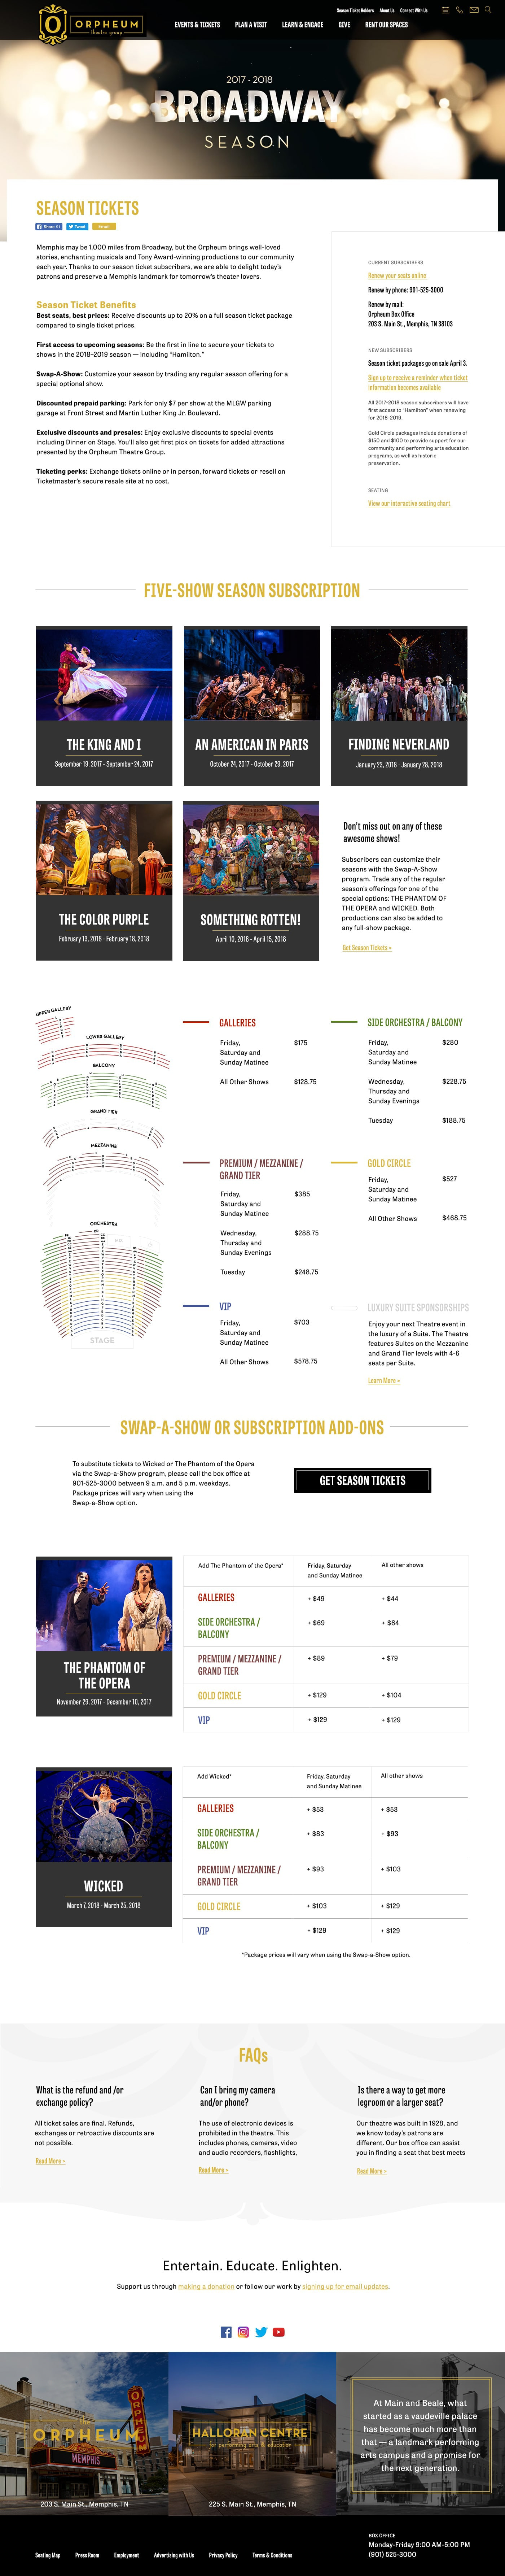 Season ticket page design for Orpheum Theatre